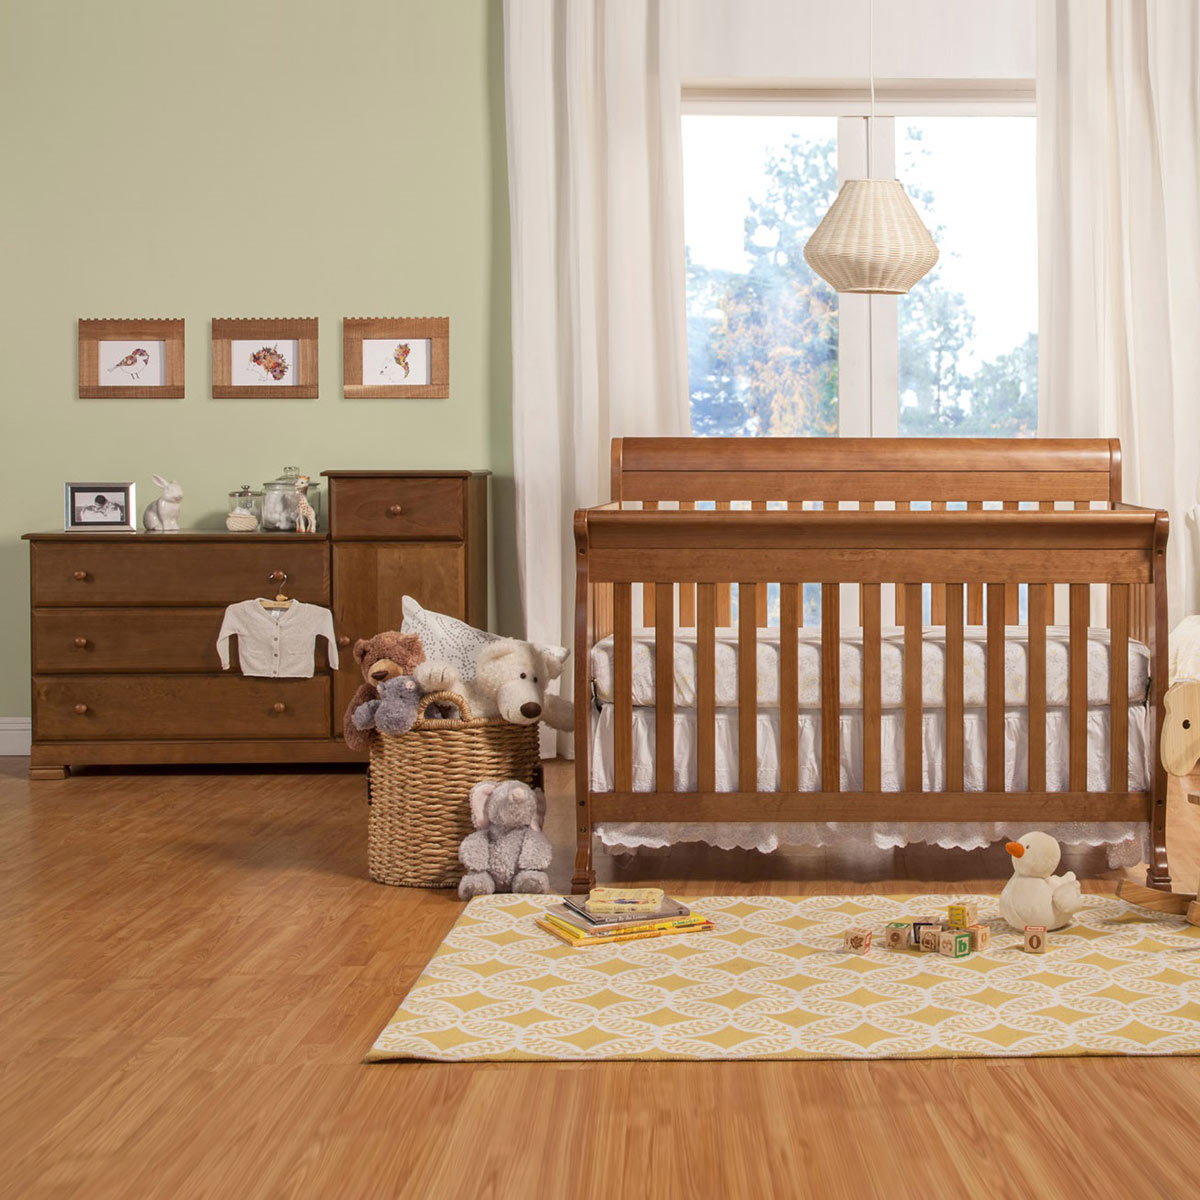 Da Vinci 2 Piece Nursery Set Kalani Convertible Crib Combination Changer White Free Shipping Davinci